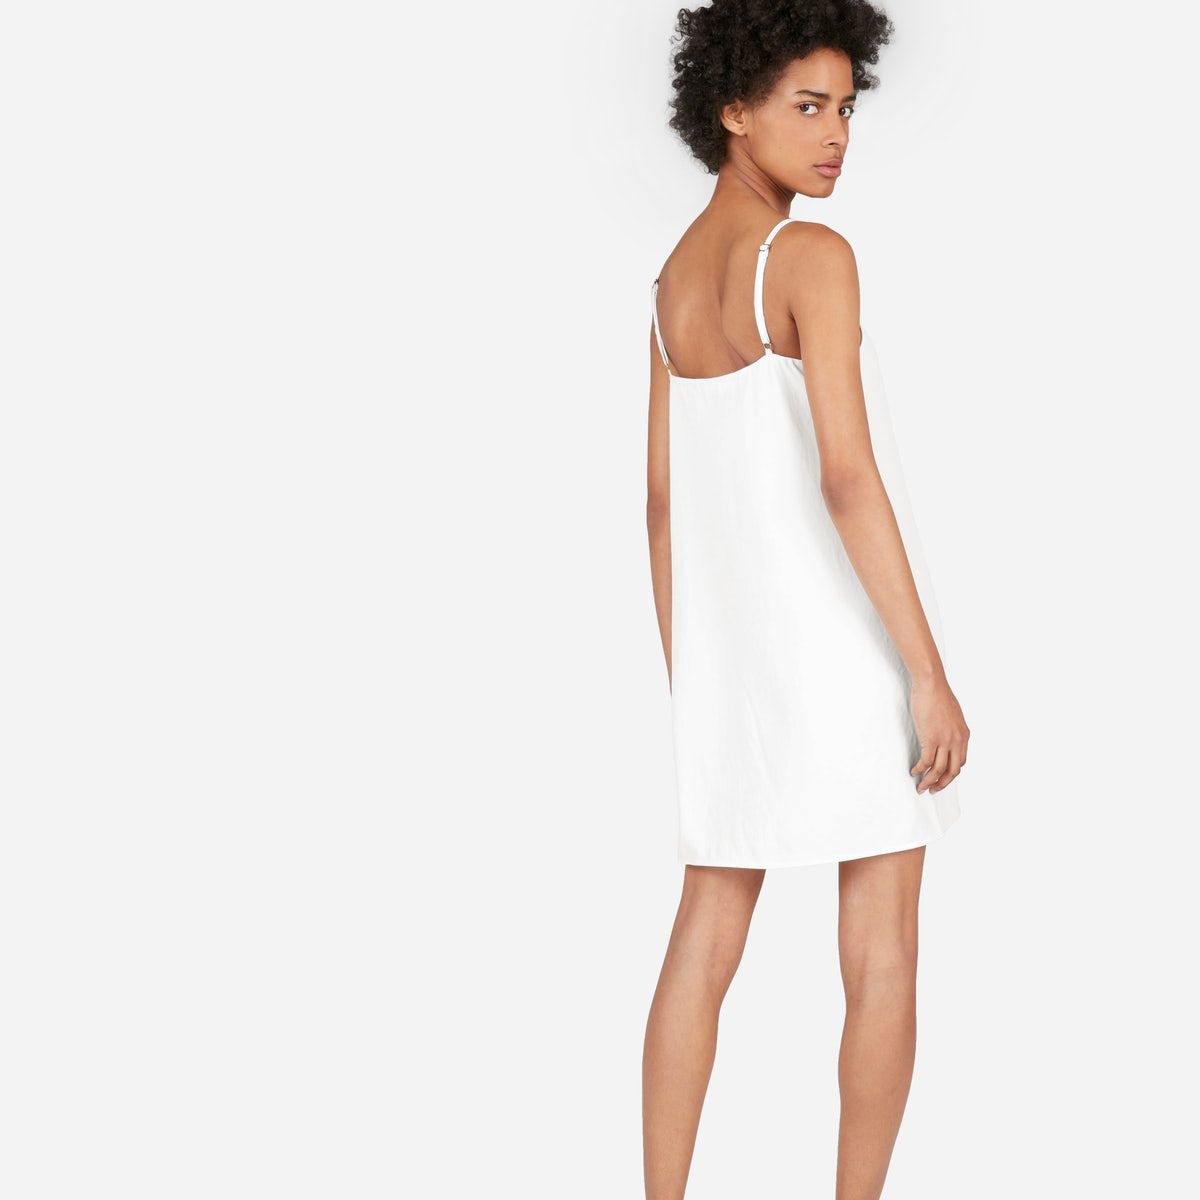 SHOP: This Summer's Flirtiest White Dresses